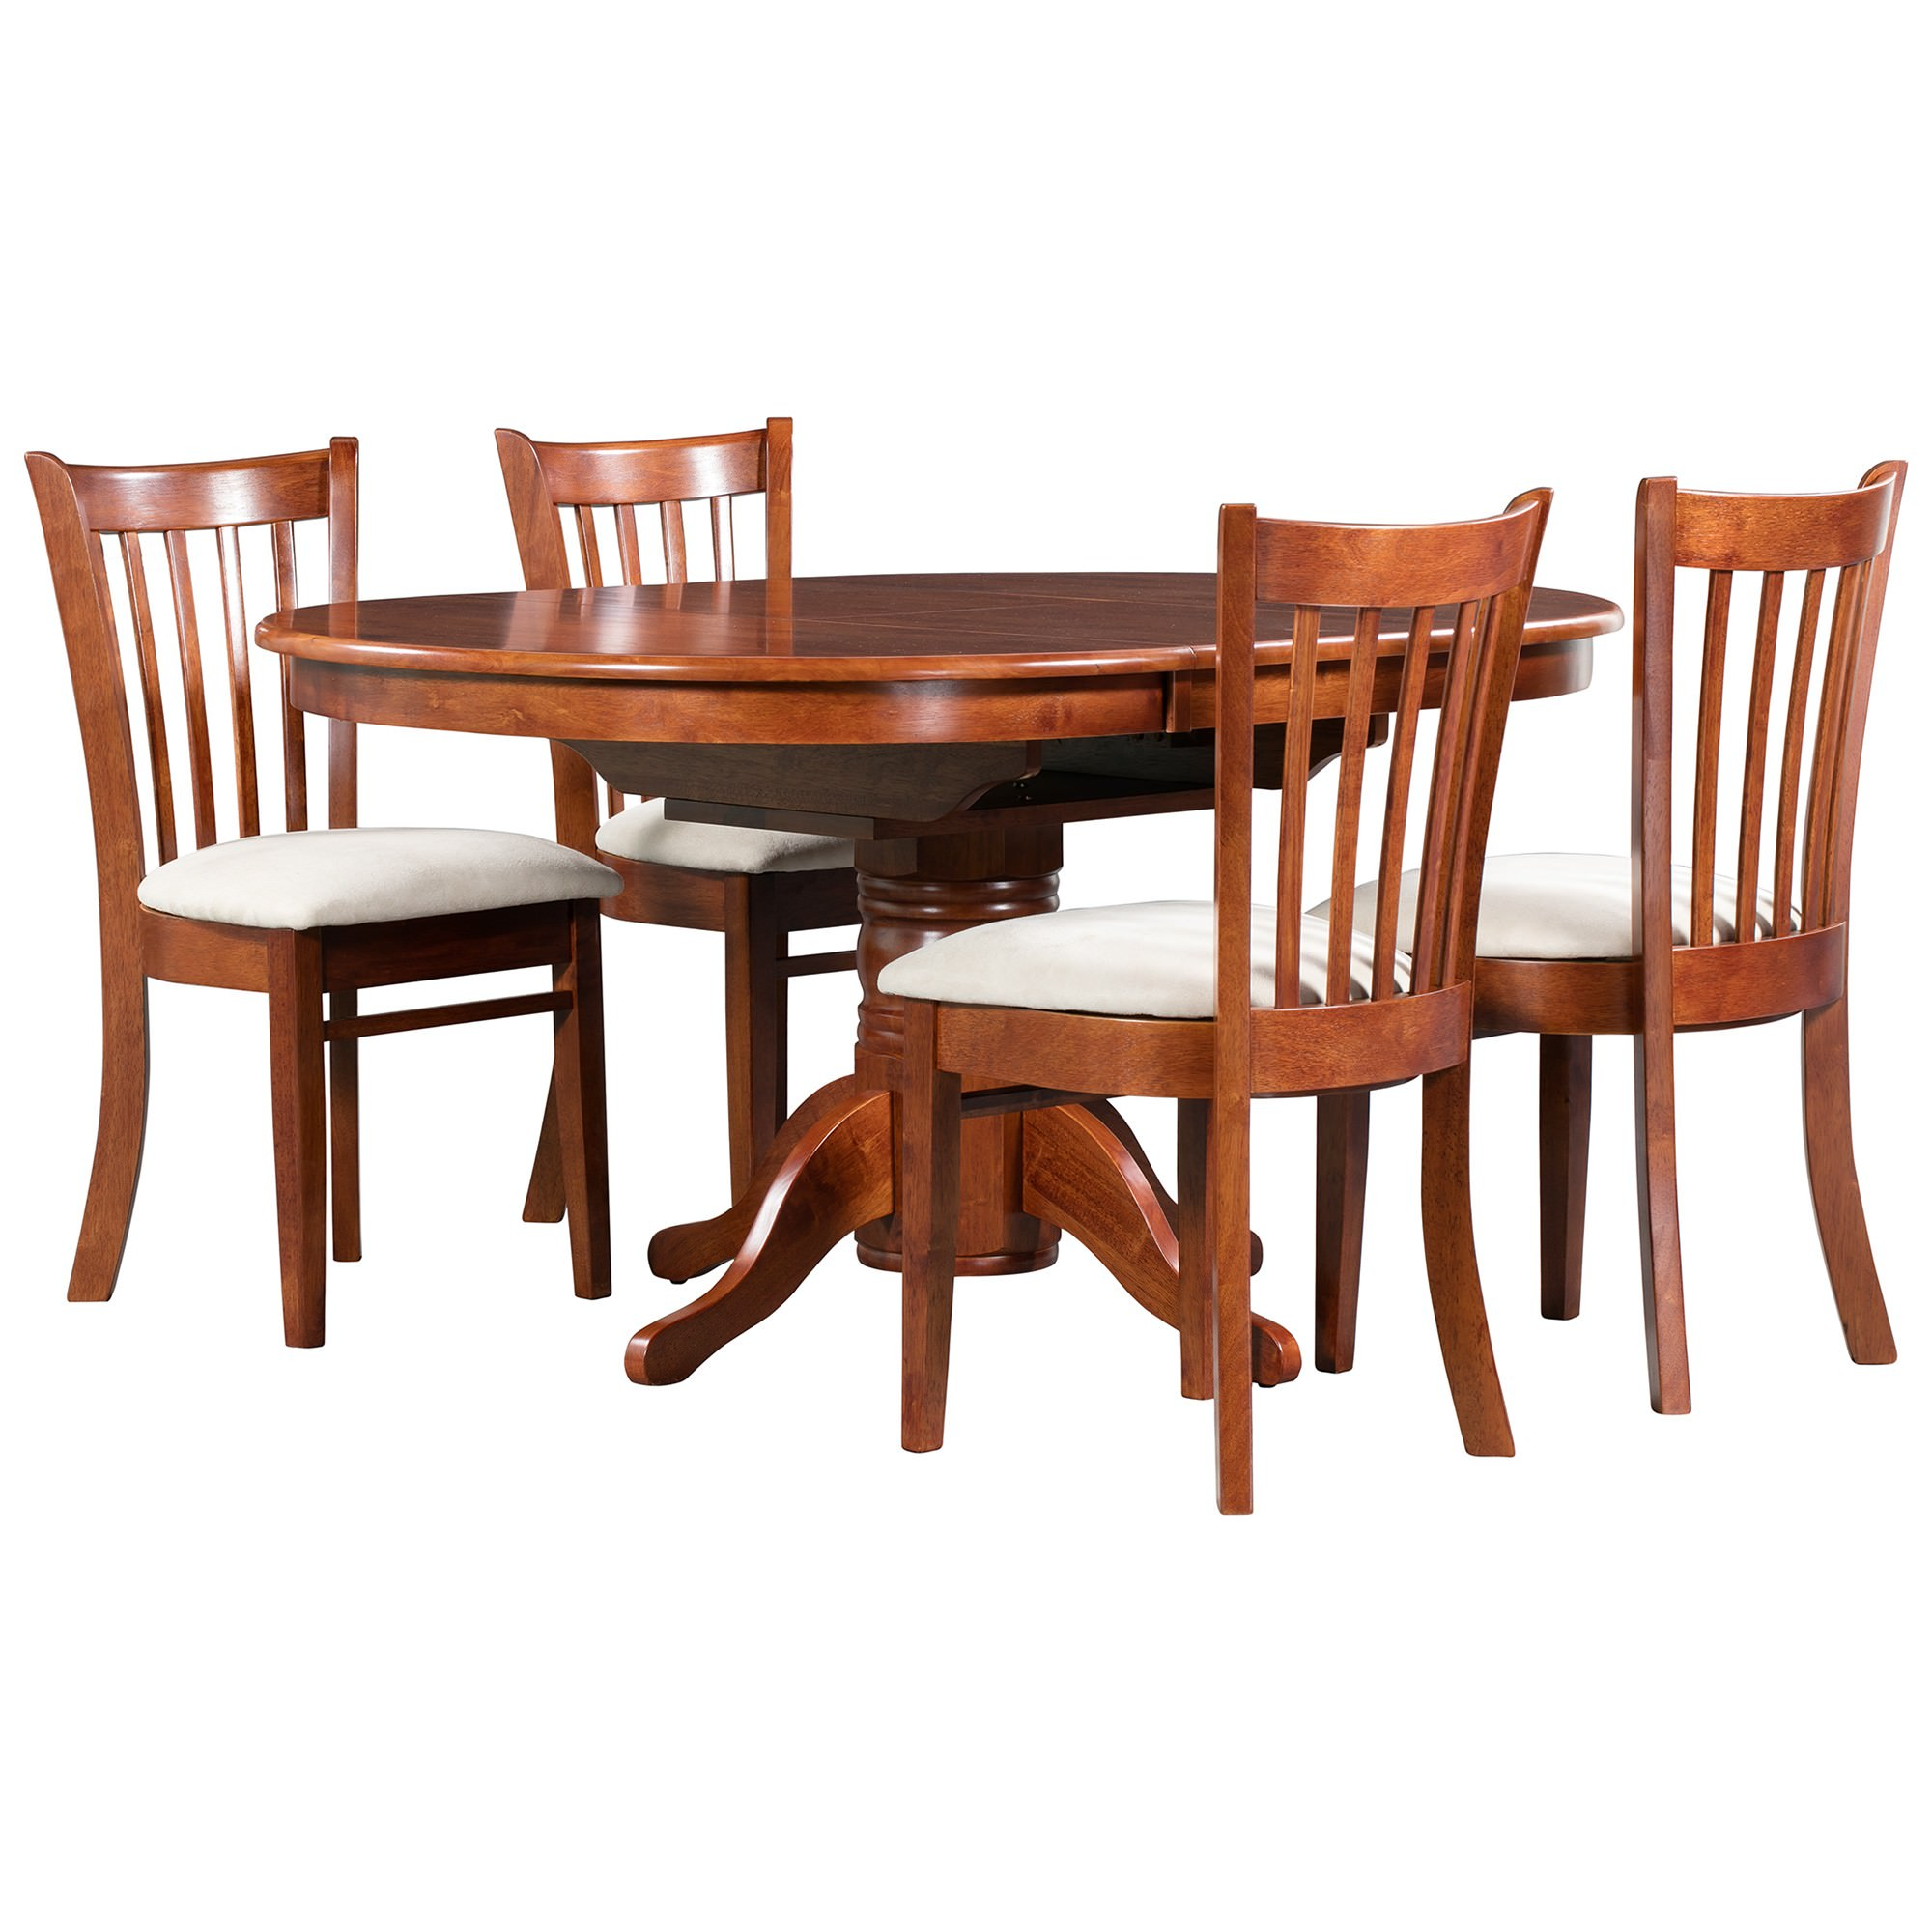 Lismore 5 Piece Rubberwood Timber Extension Dining Table Set, 107-151cm